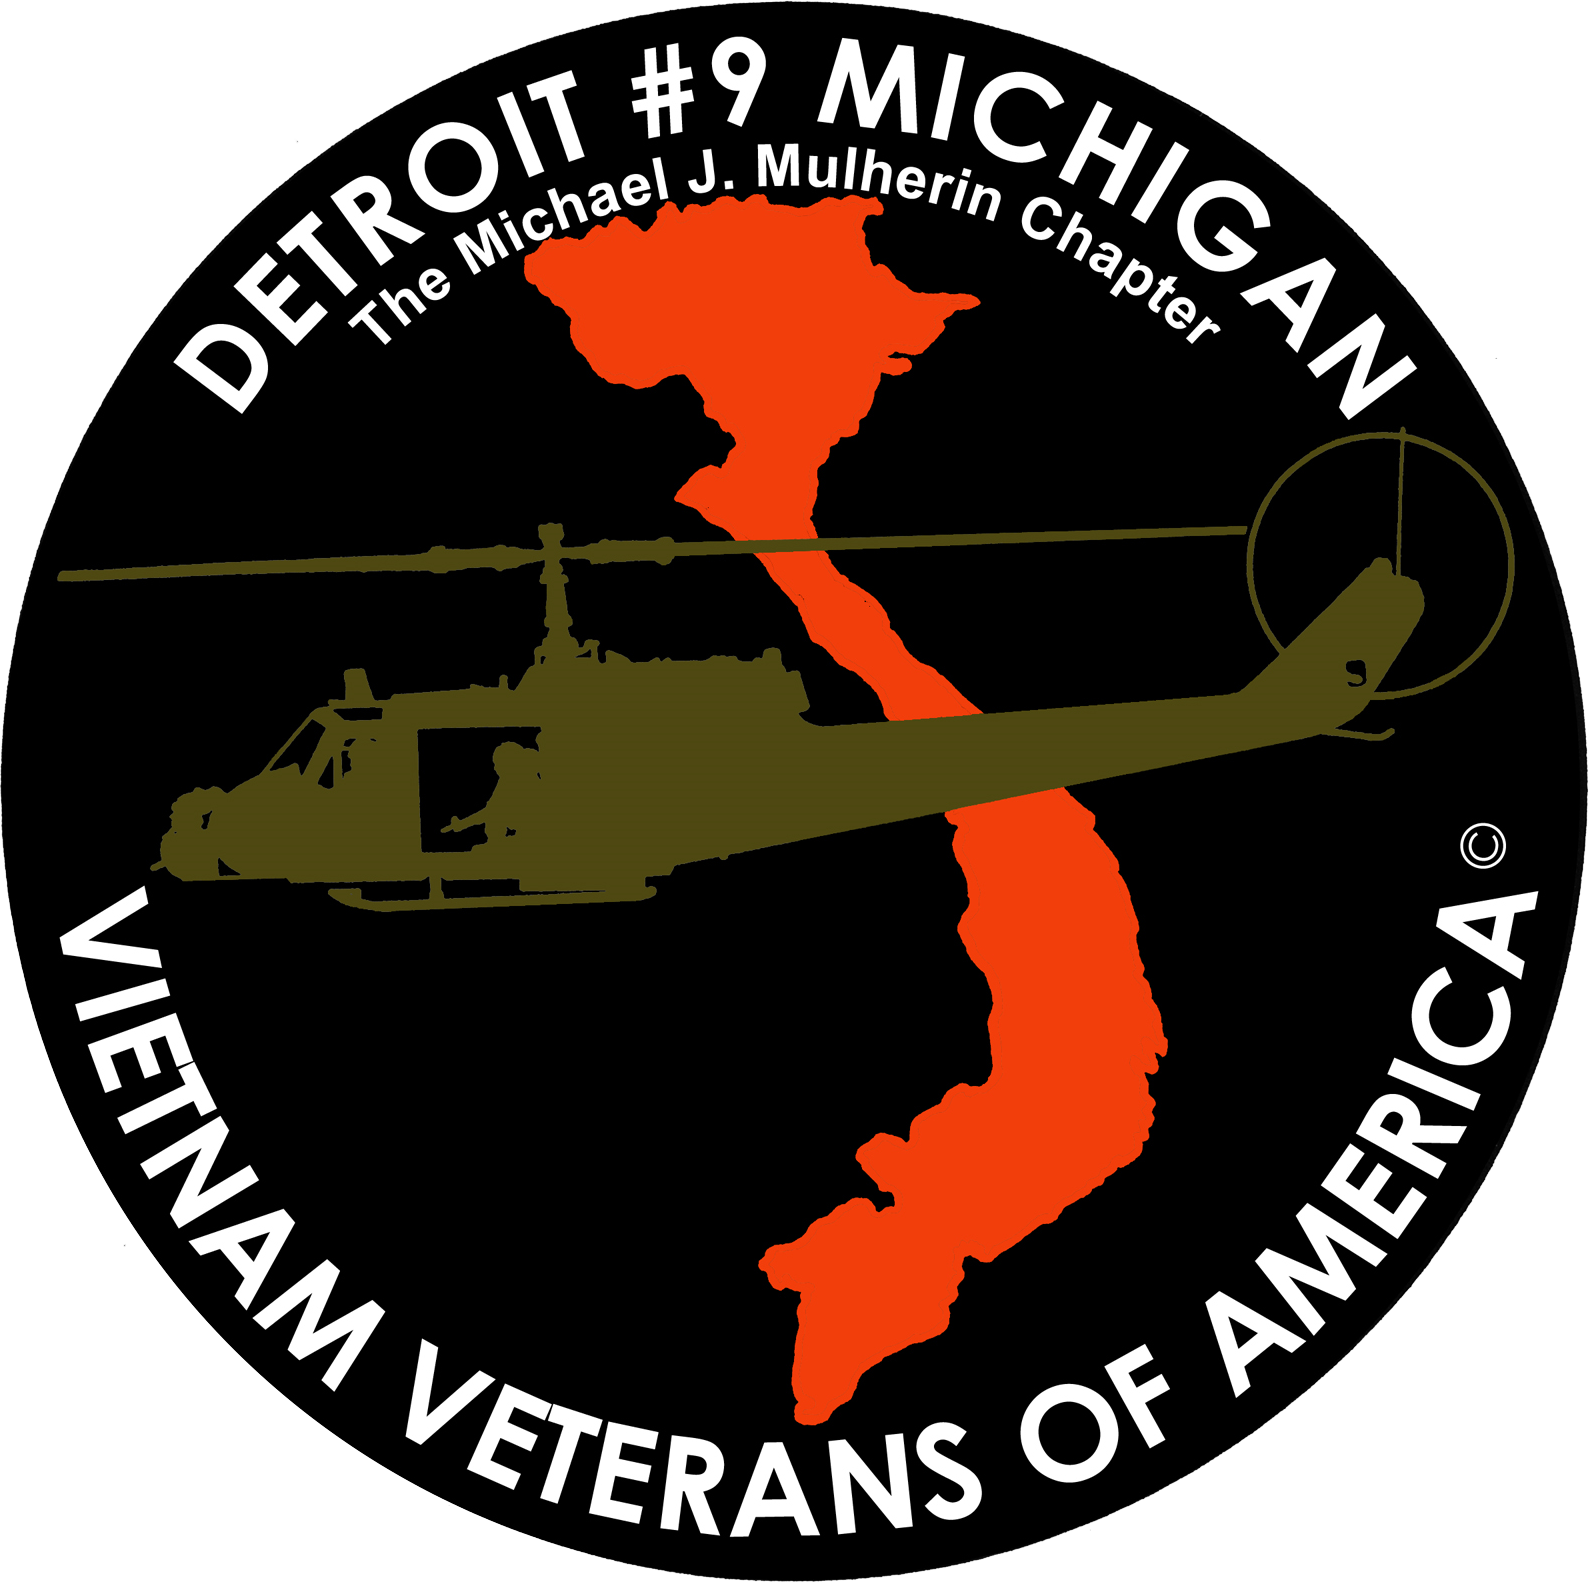 Vietnam Veterans of America Chapter 9